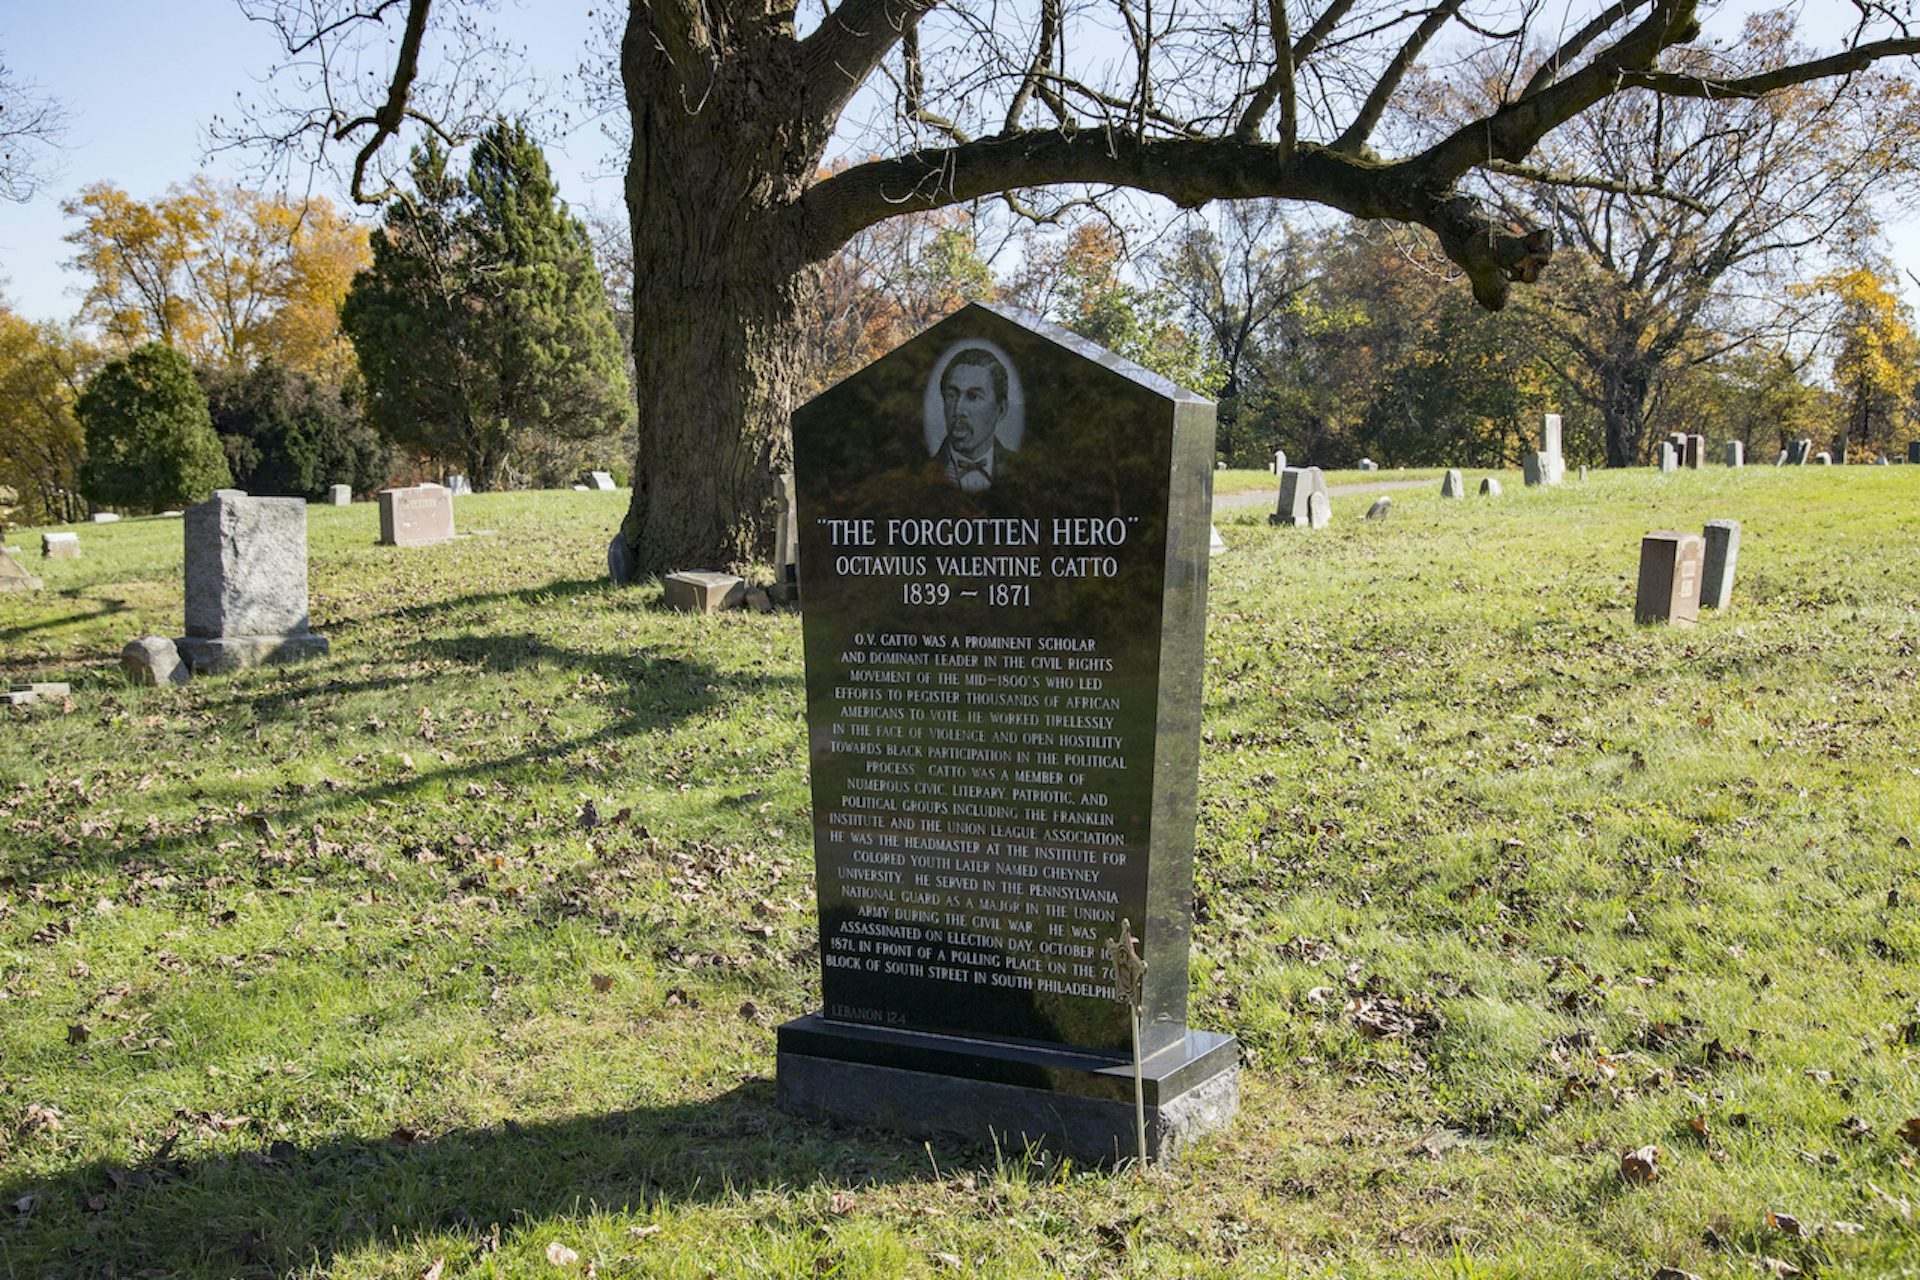 A new headstone for Octavius Catto was installed in 2007 by the Octavius V. Catto Memorial Fund.